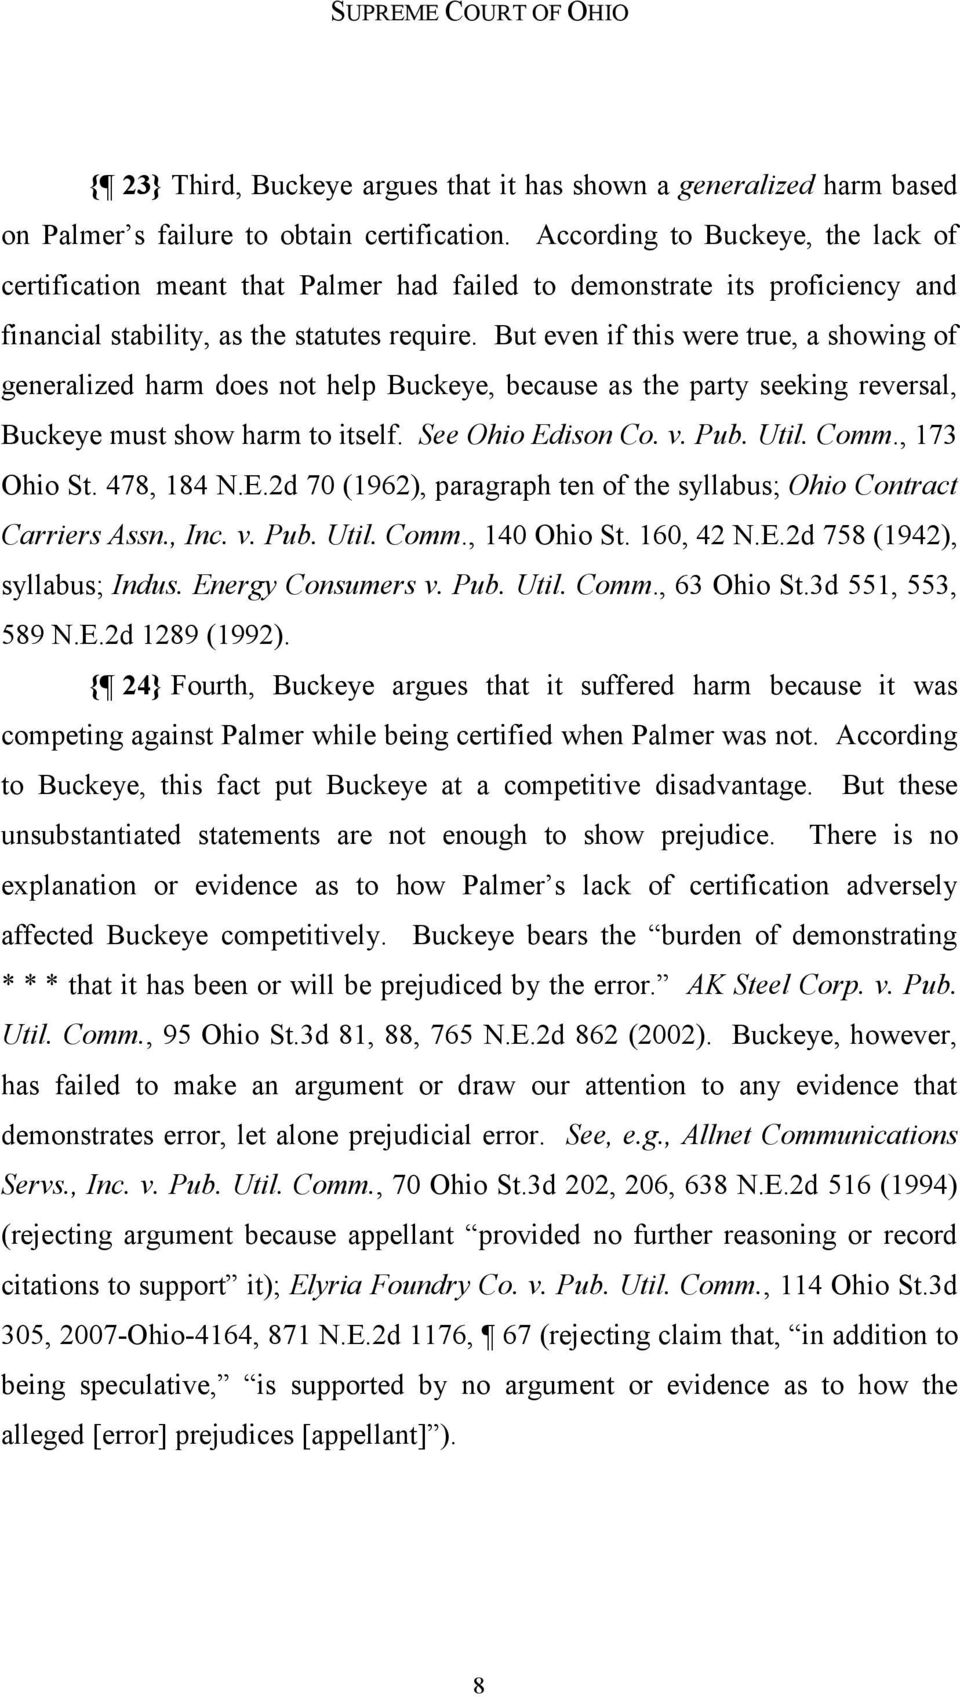 But even if this were true, a showing of generalized harm does not help Buckeye, because as the party seeking reversal, Buckeye must show harm to itself. See Ohio Edison Co. v. Pub. Util. Comm.